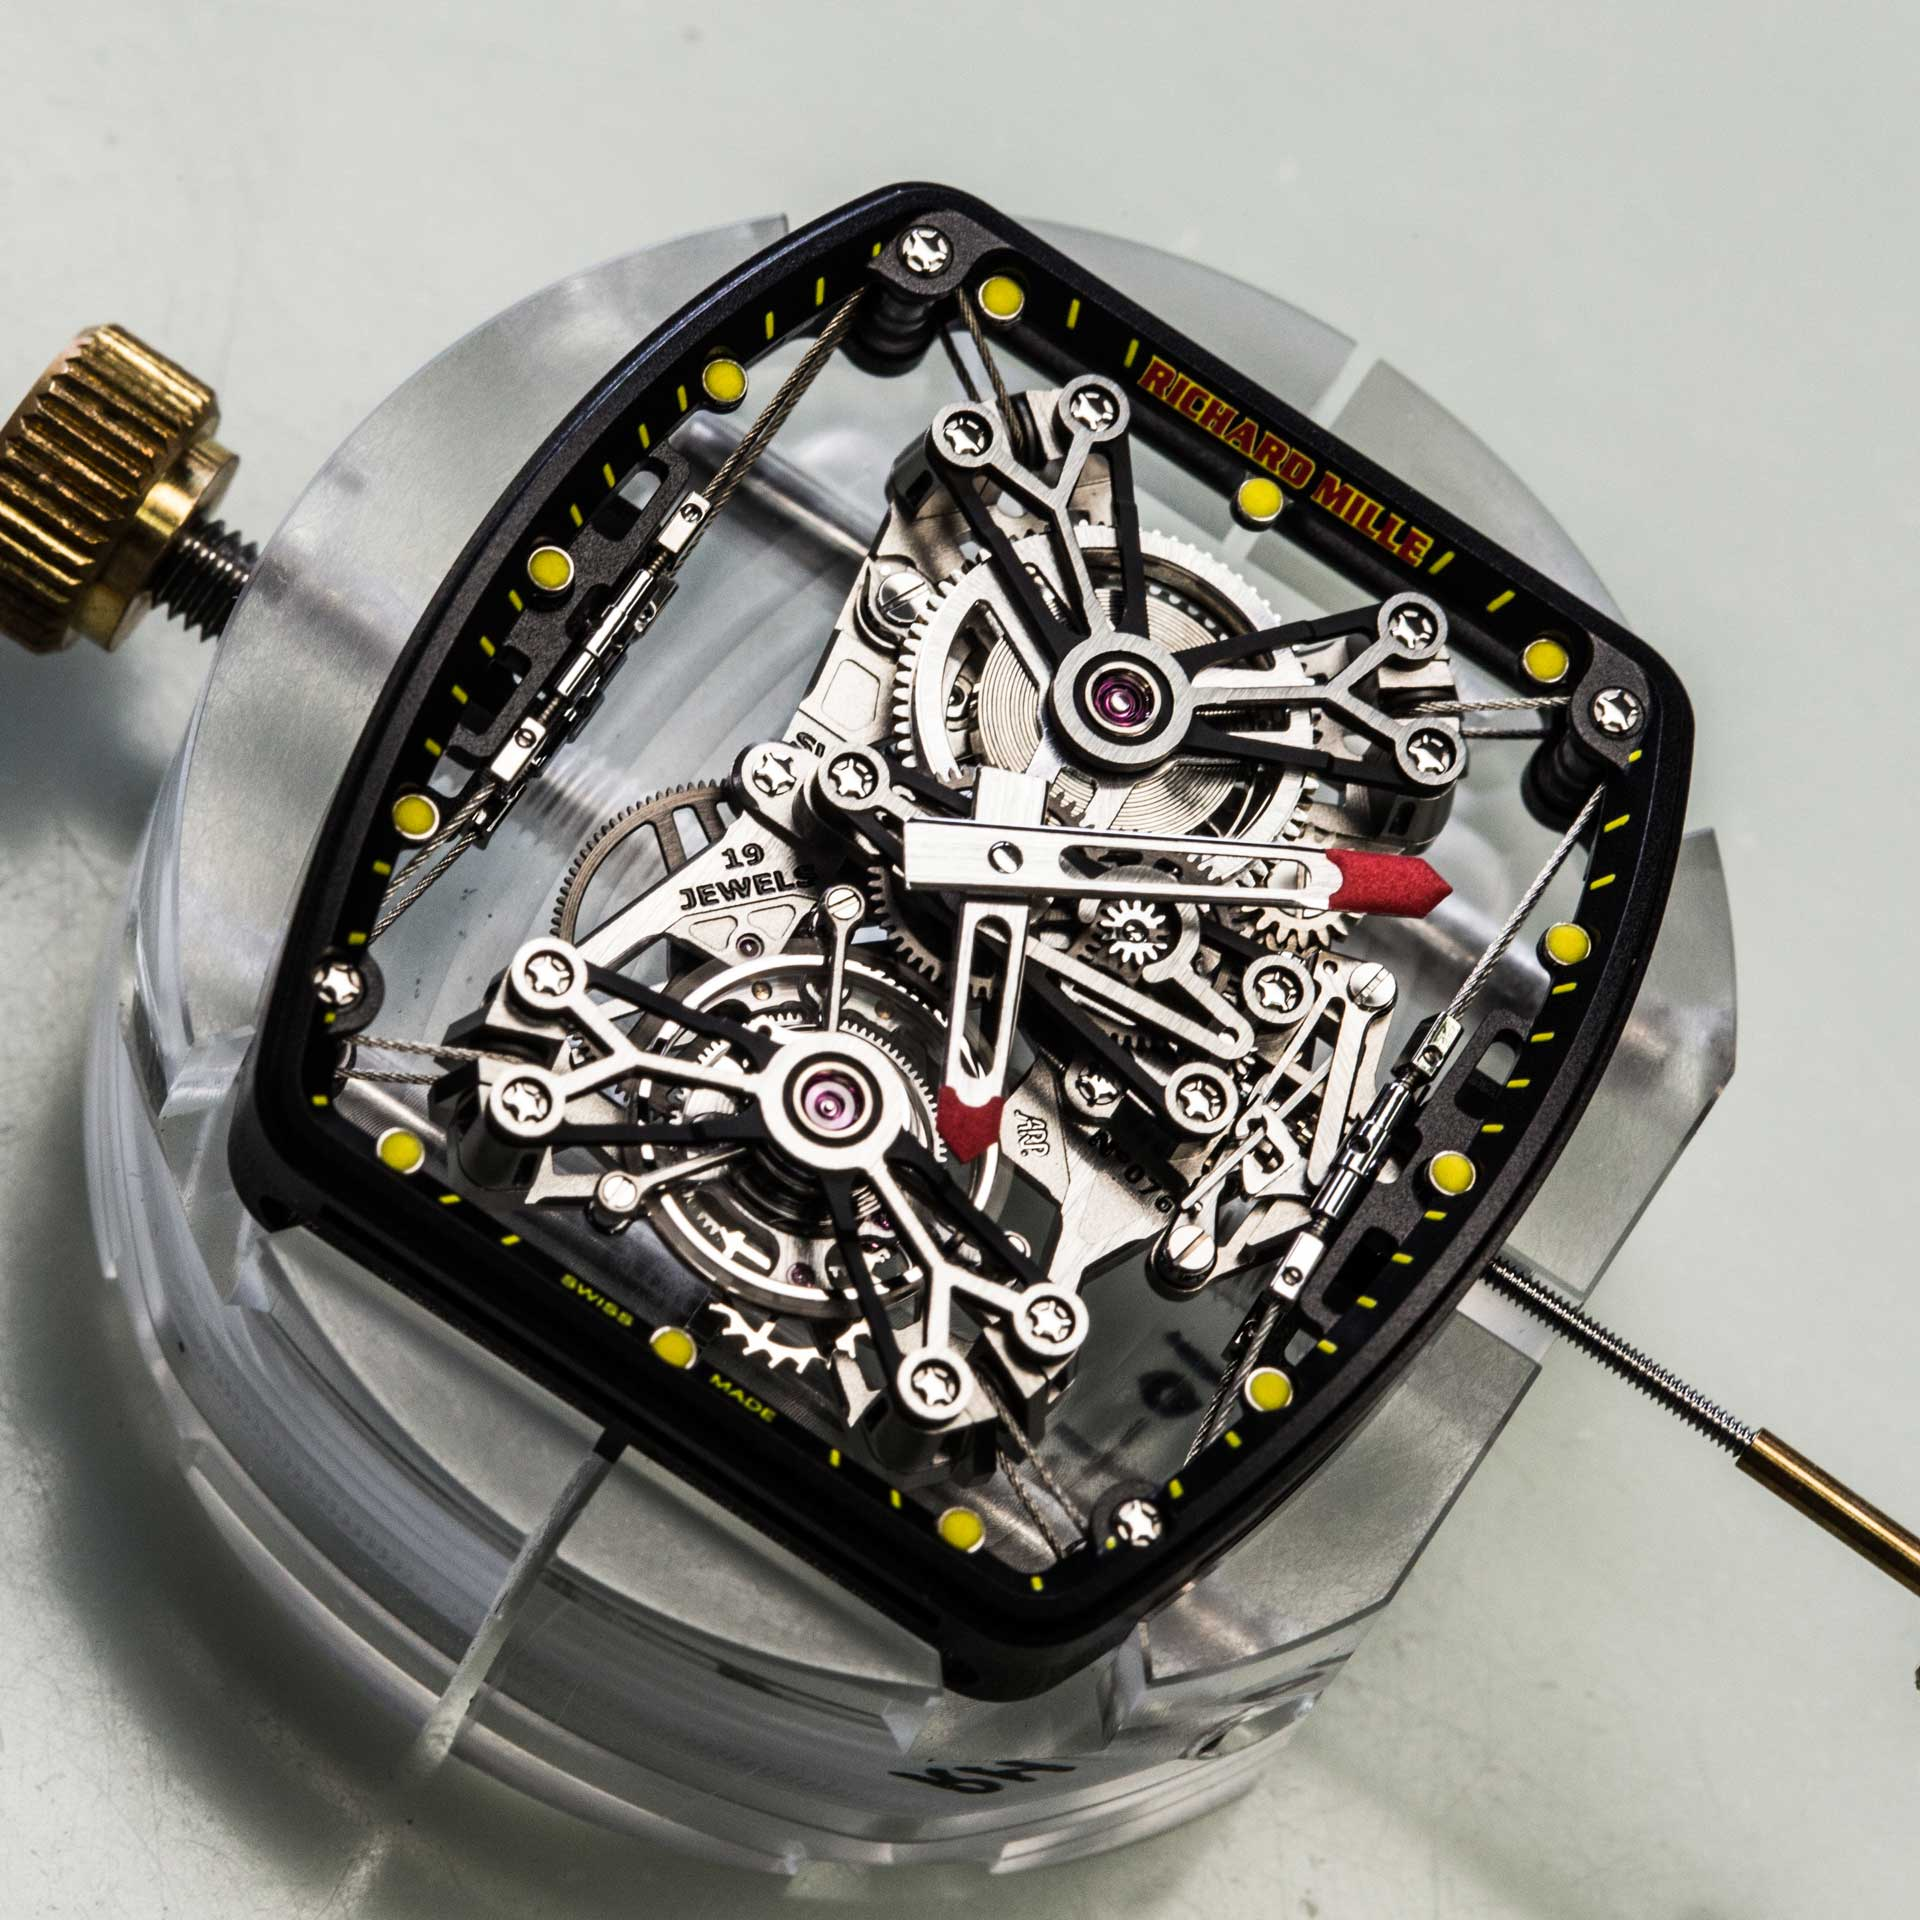 Giulio Papi On 15 Years Of Richard Mille | Revolution Watch